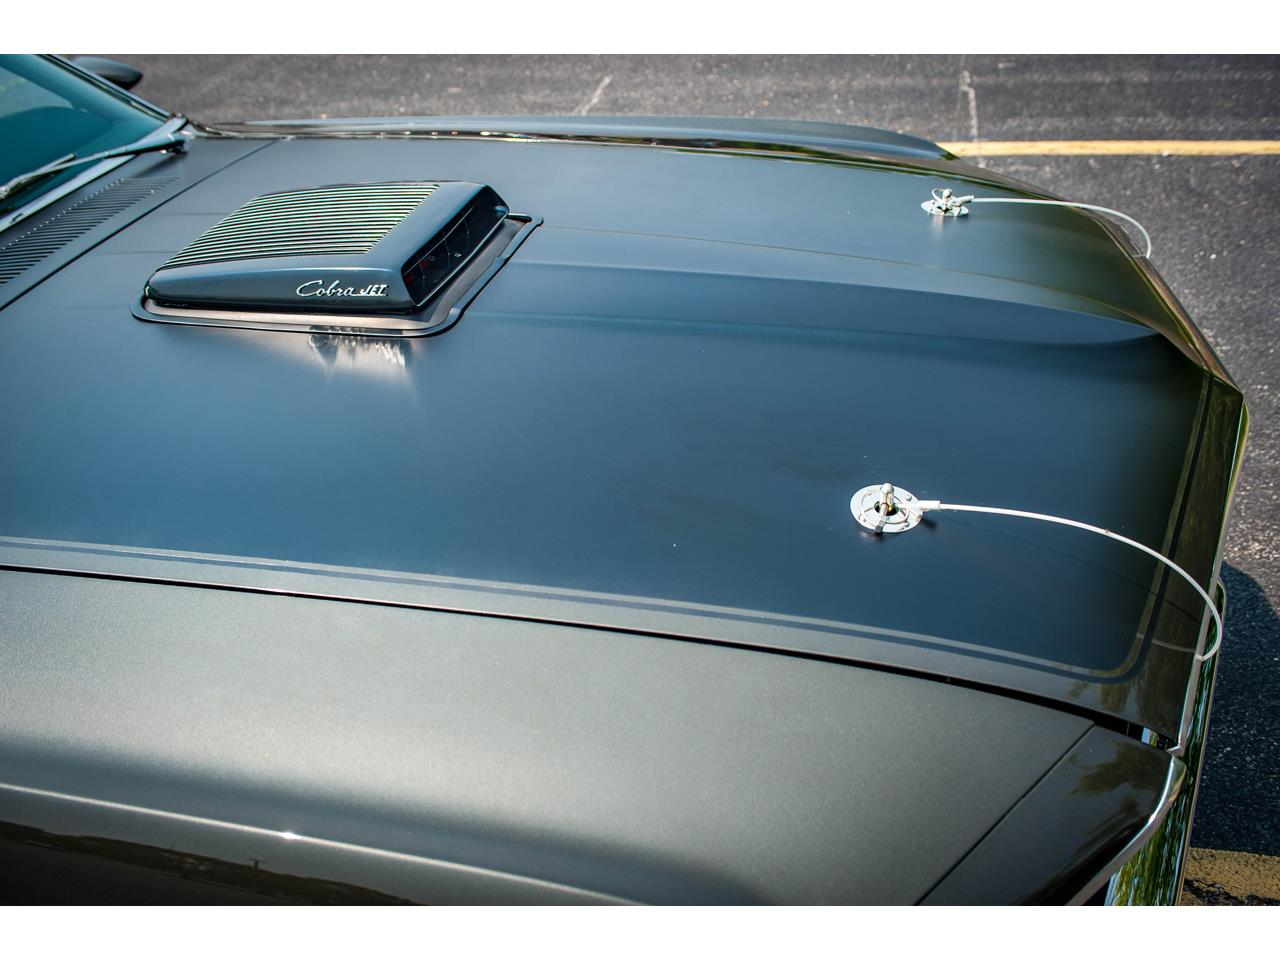 Large Picture of Classic 1969 Mustang located in Illinois - $97,500.00 Offered by Gateway Classic Cars - St. Louis - QBA2